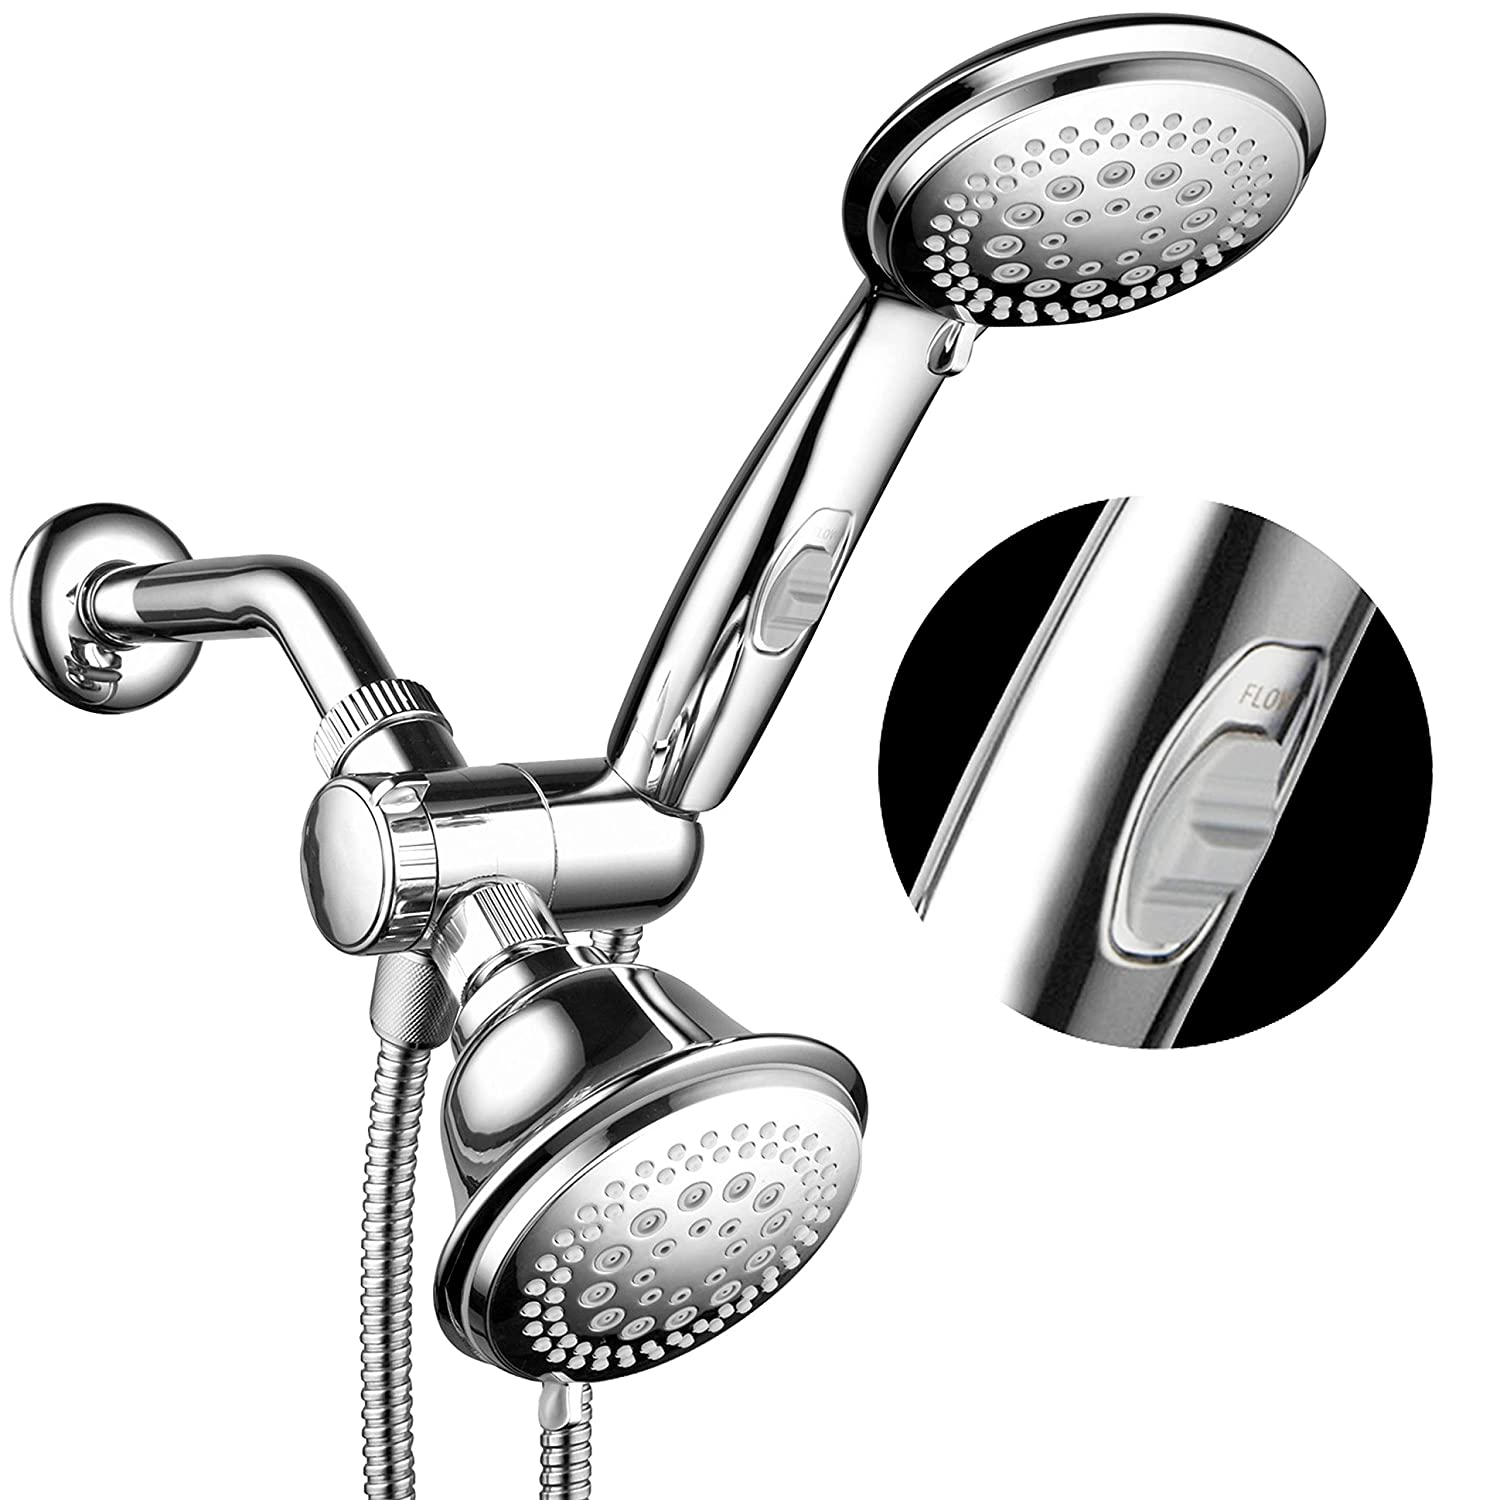 HotelSpa FBA_1465 Ultra Luxury 42 Setting Head/Handheld Shower Combo with Patented ON/Off Pause Switch and 5-7 Foot Stretchable Stainless Steel Hose/Premium Chrome